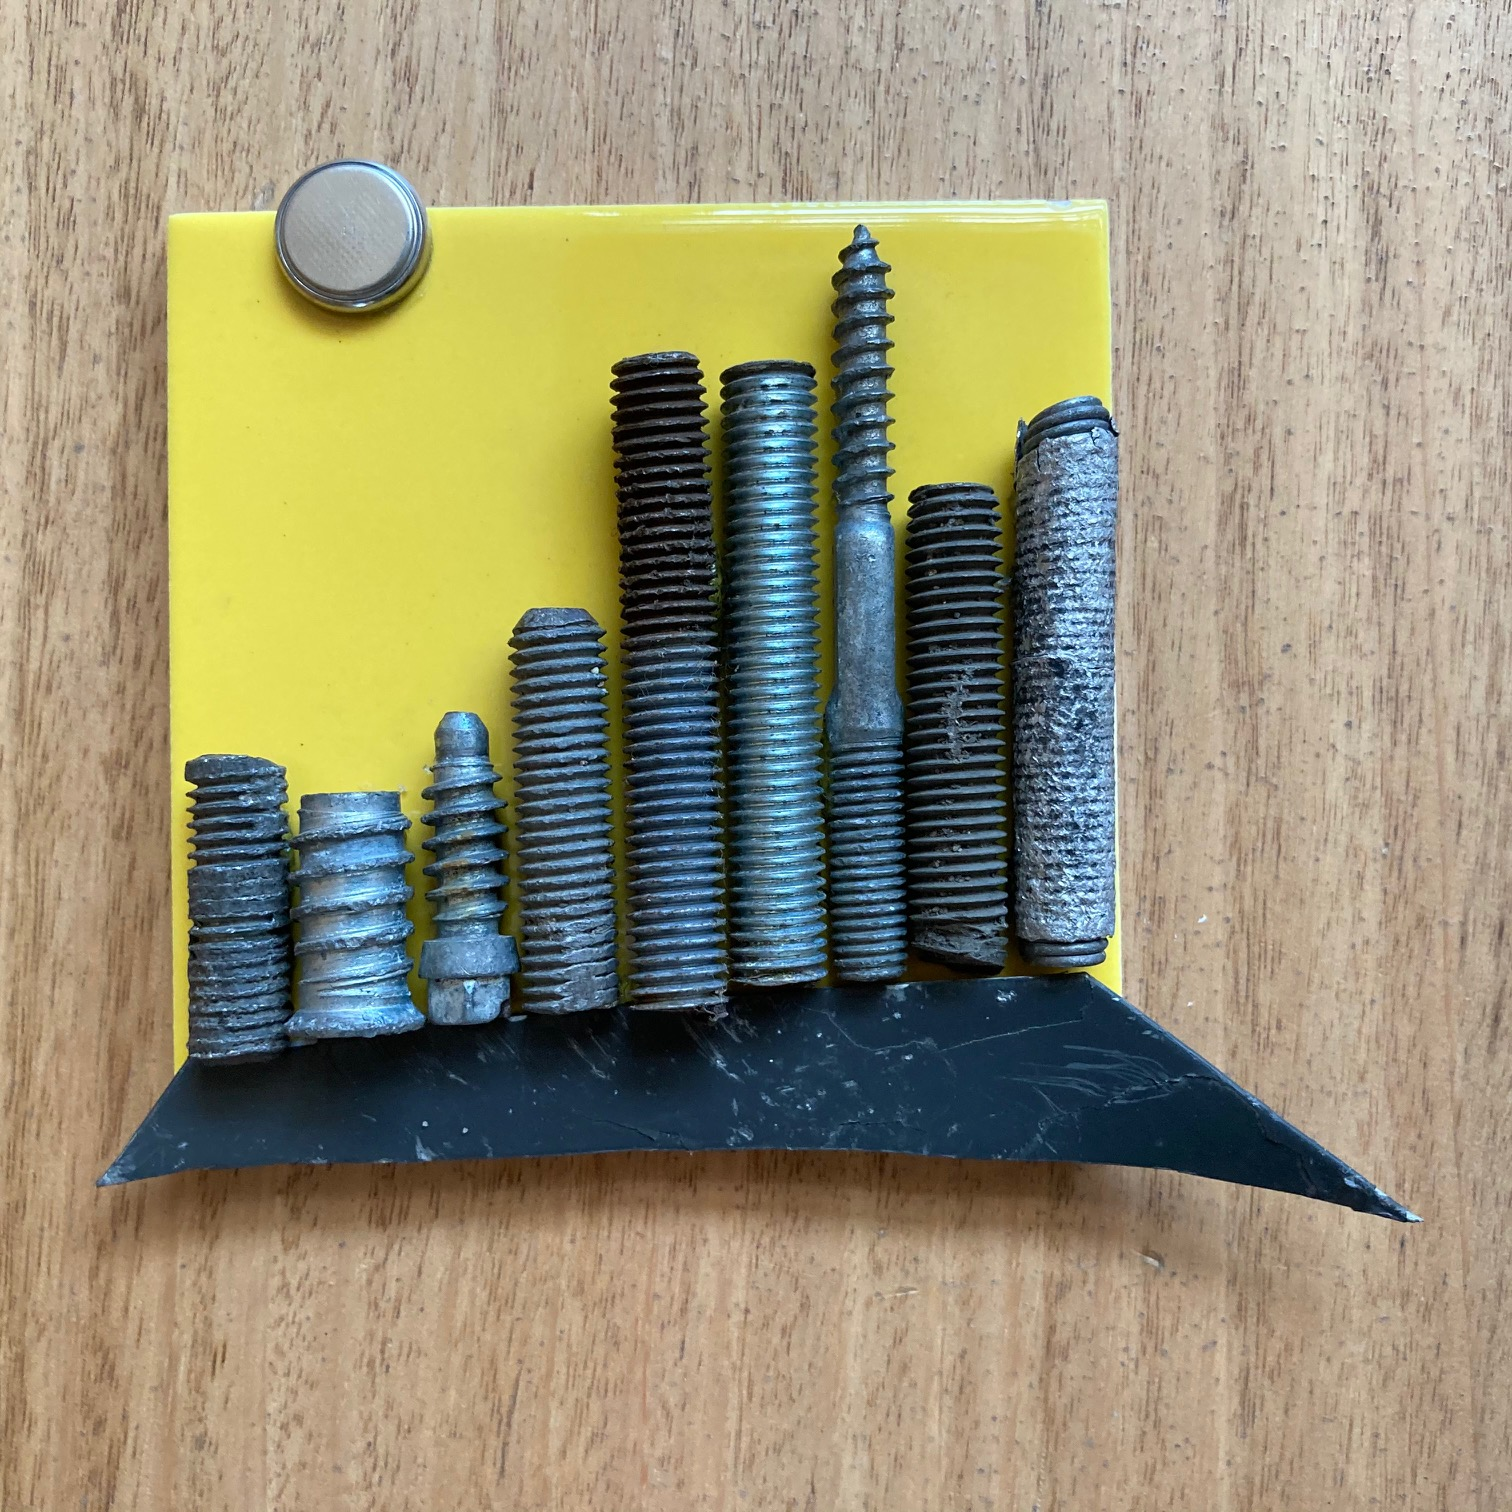 City On The Tablelands 1 – Wall Sculpture By NancyDee Sculptures